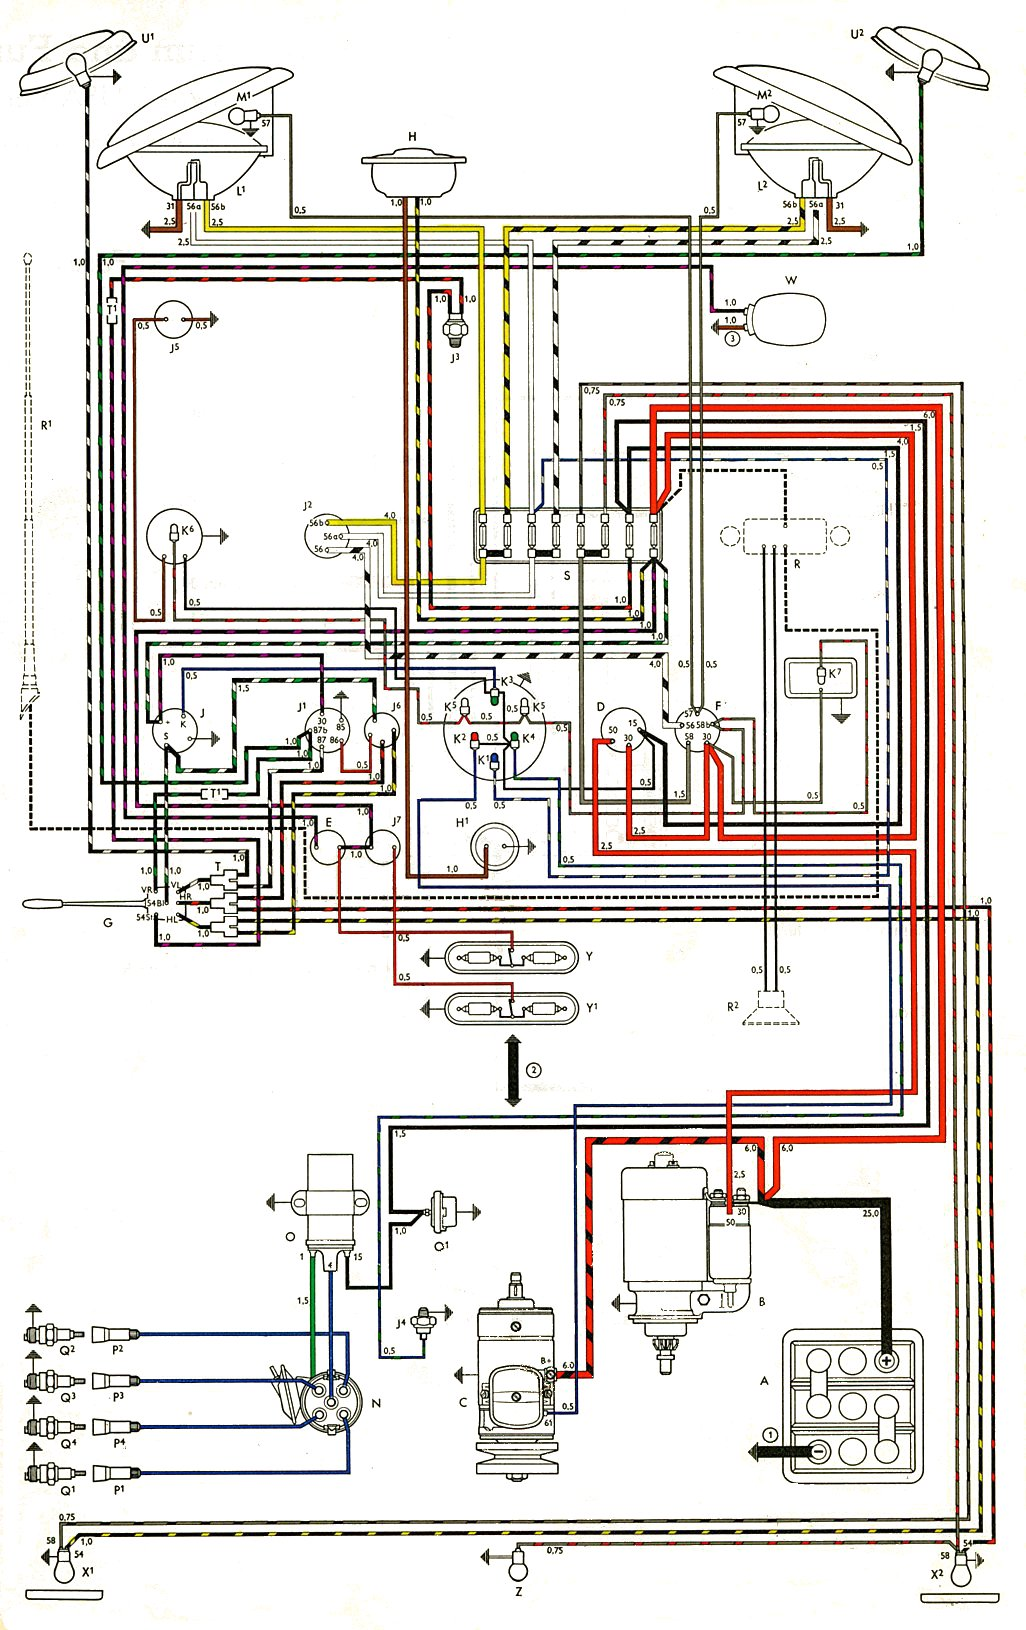 thesamba com type 2 wiring diagrams 1975 vw type 2 wiring schematic